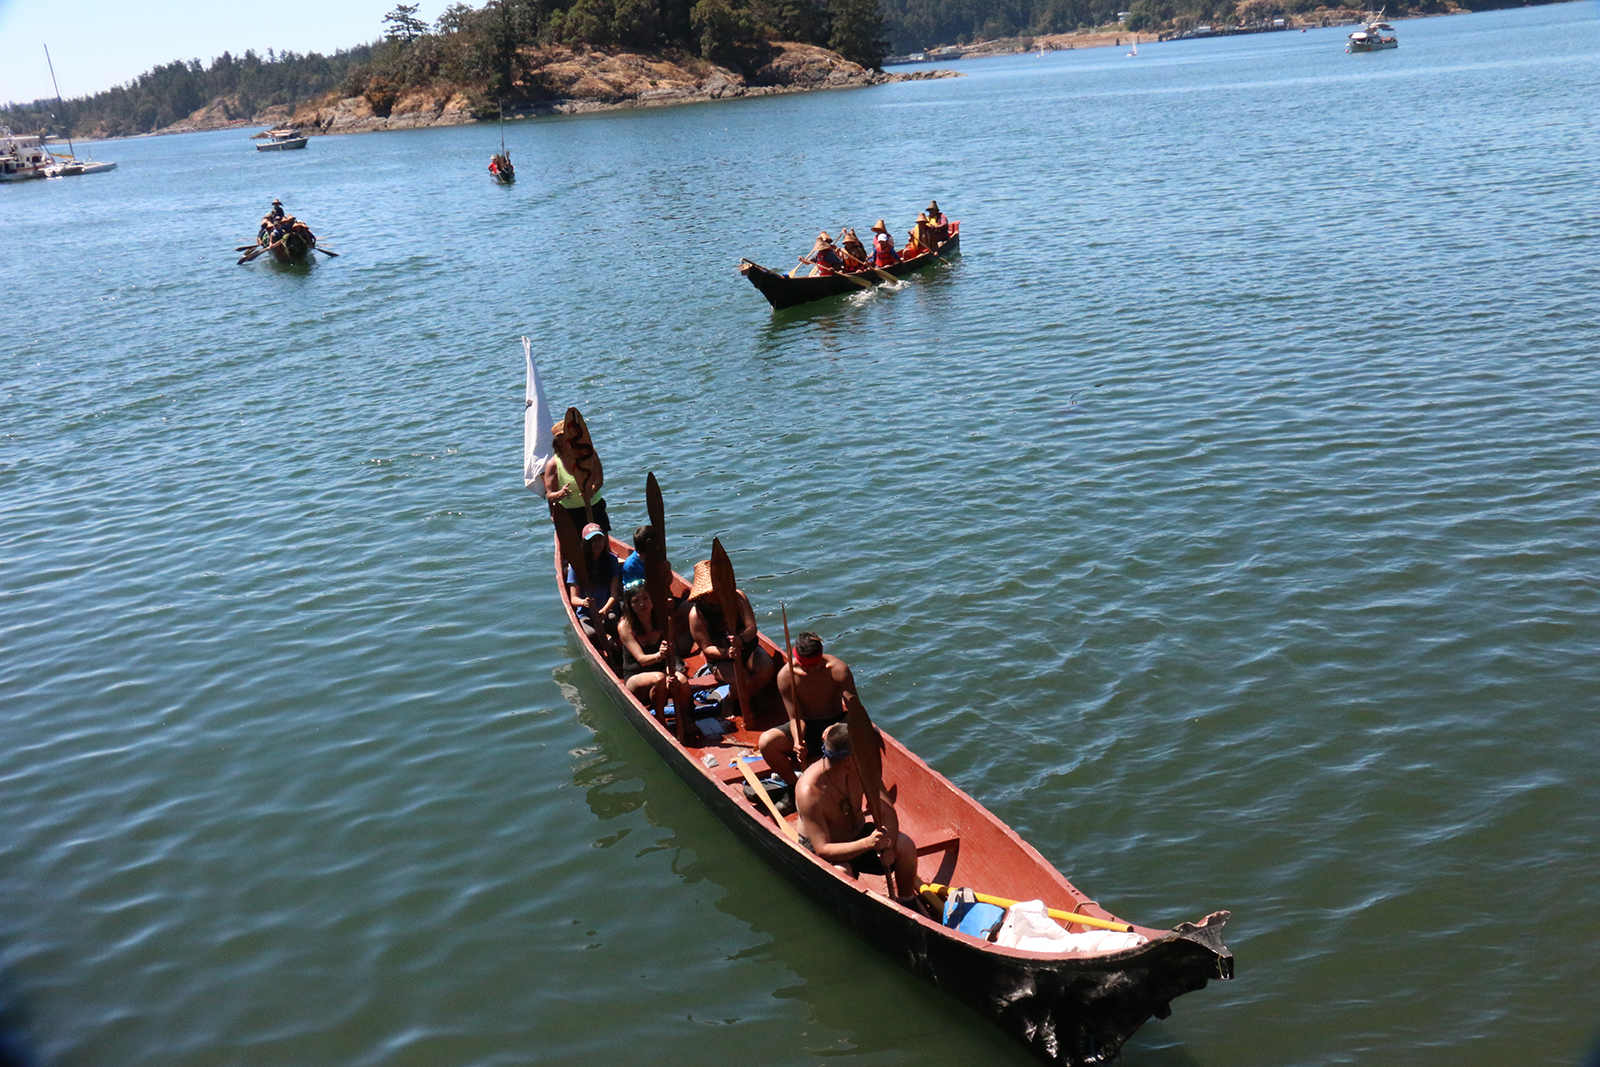 Canoes representing First Nations from Vancouver Island and tribes from the United States arrive in Plumper Bay, Esquimalt and Songhees traditional territory.